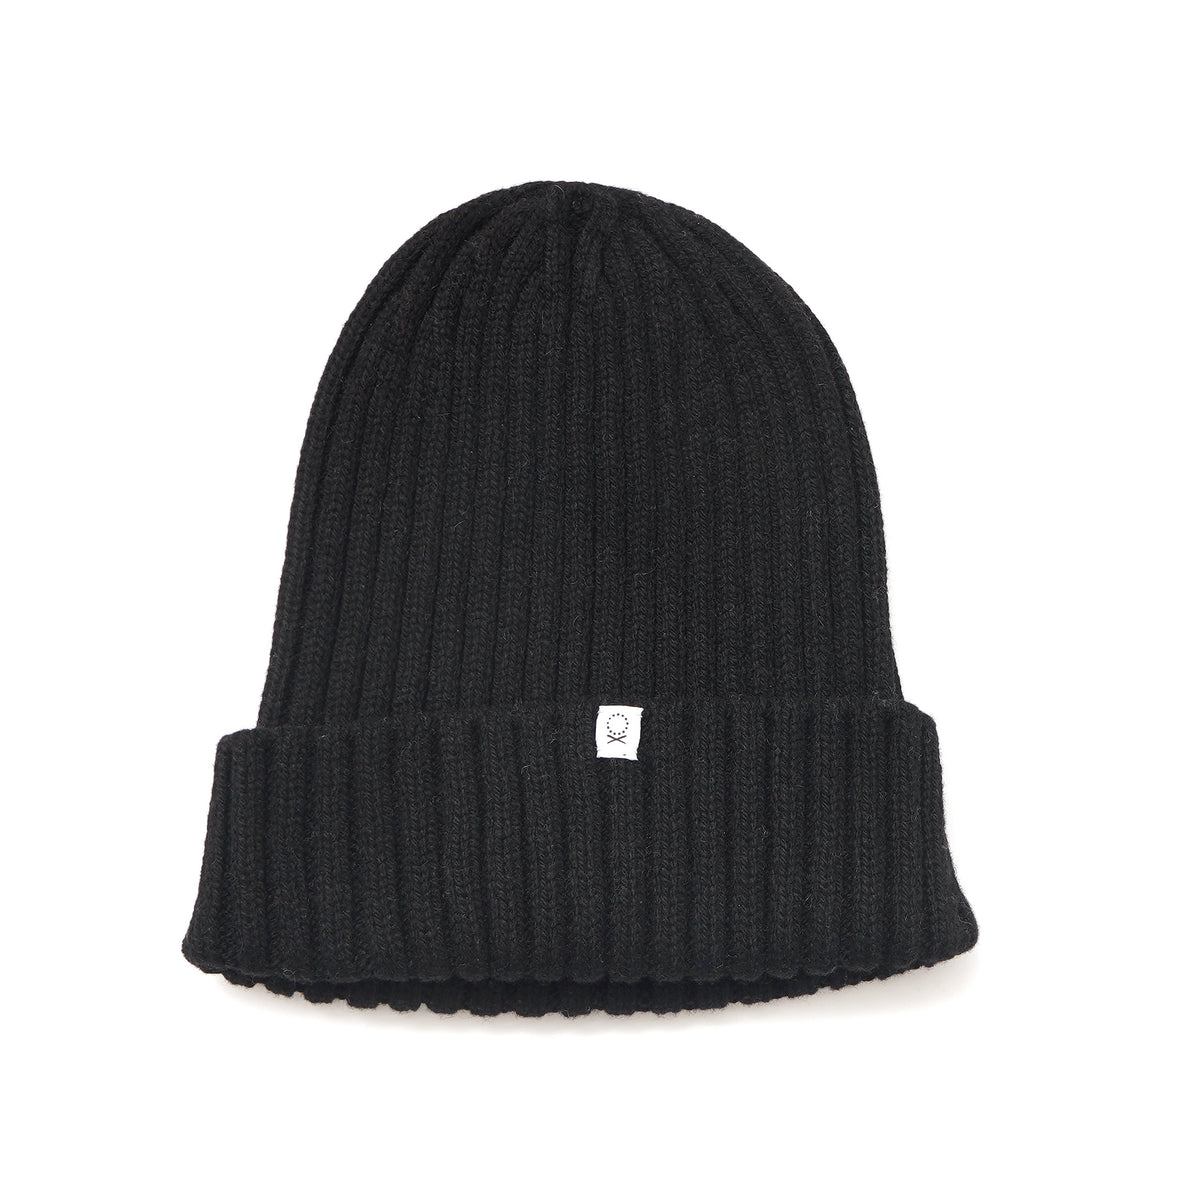 Recycled Cashmere Beanie - Black